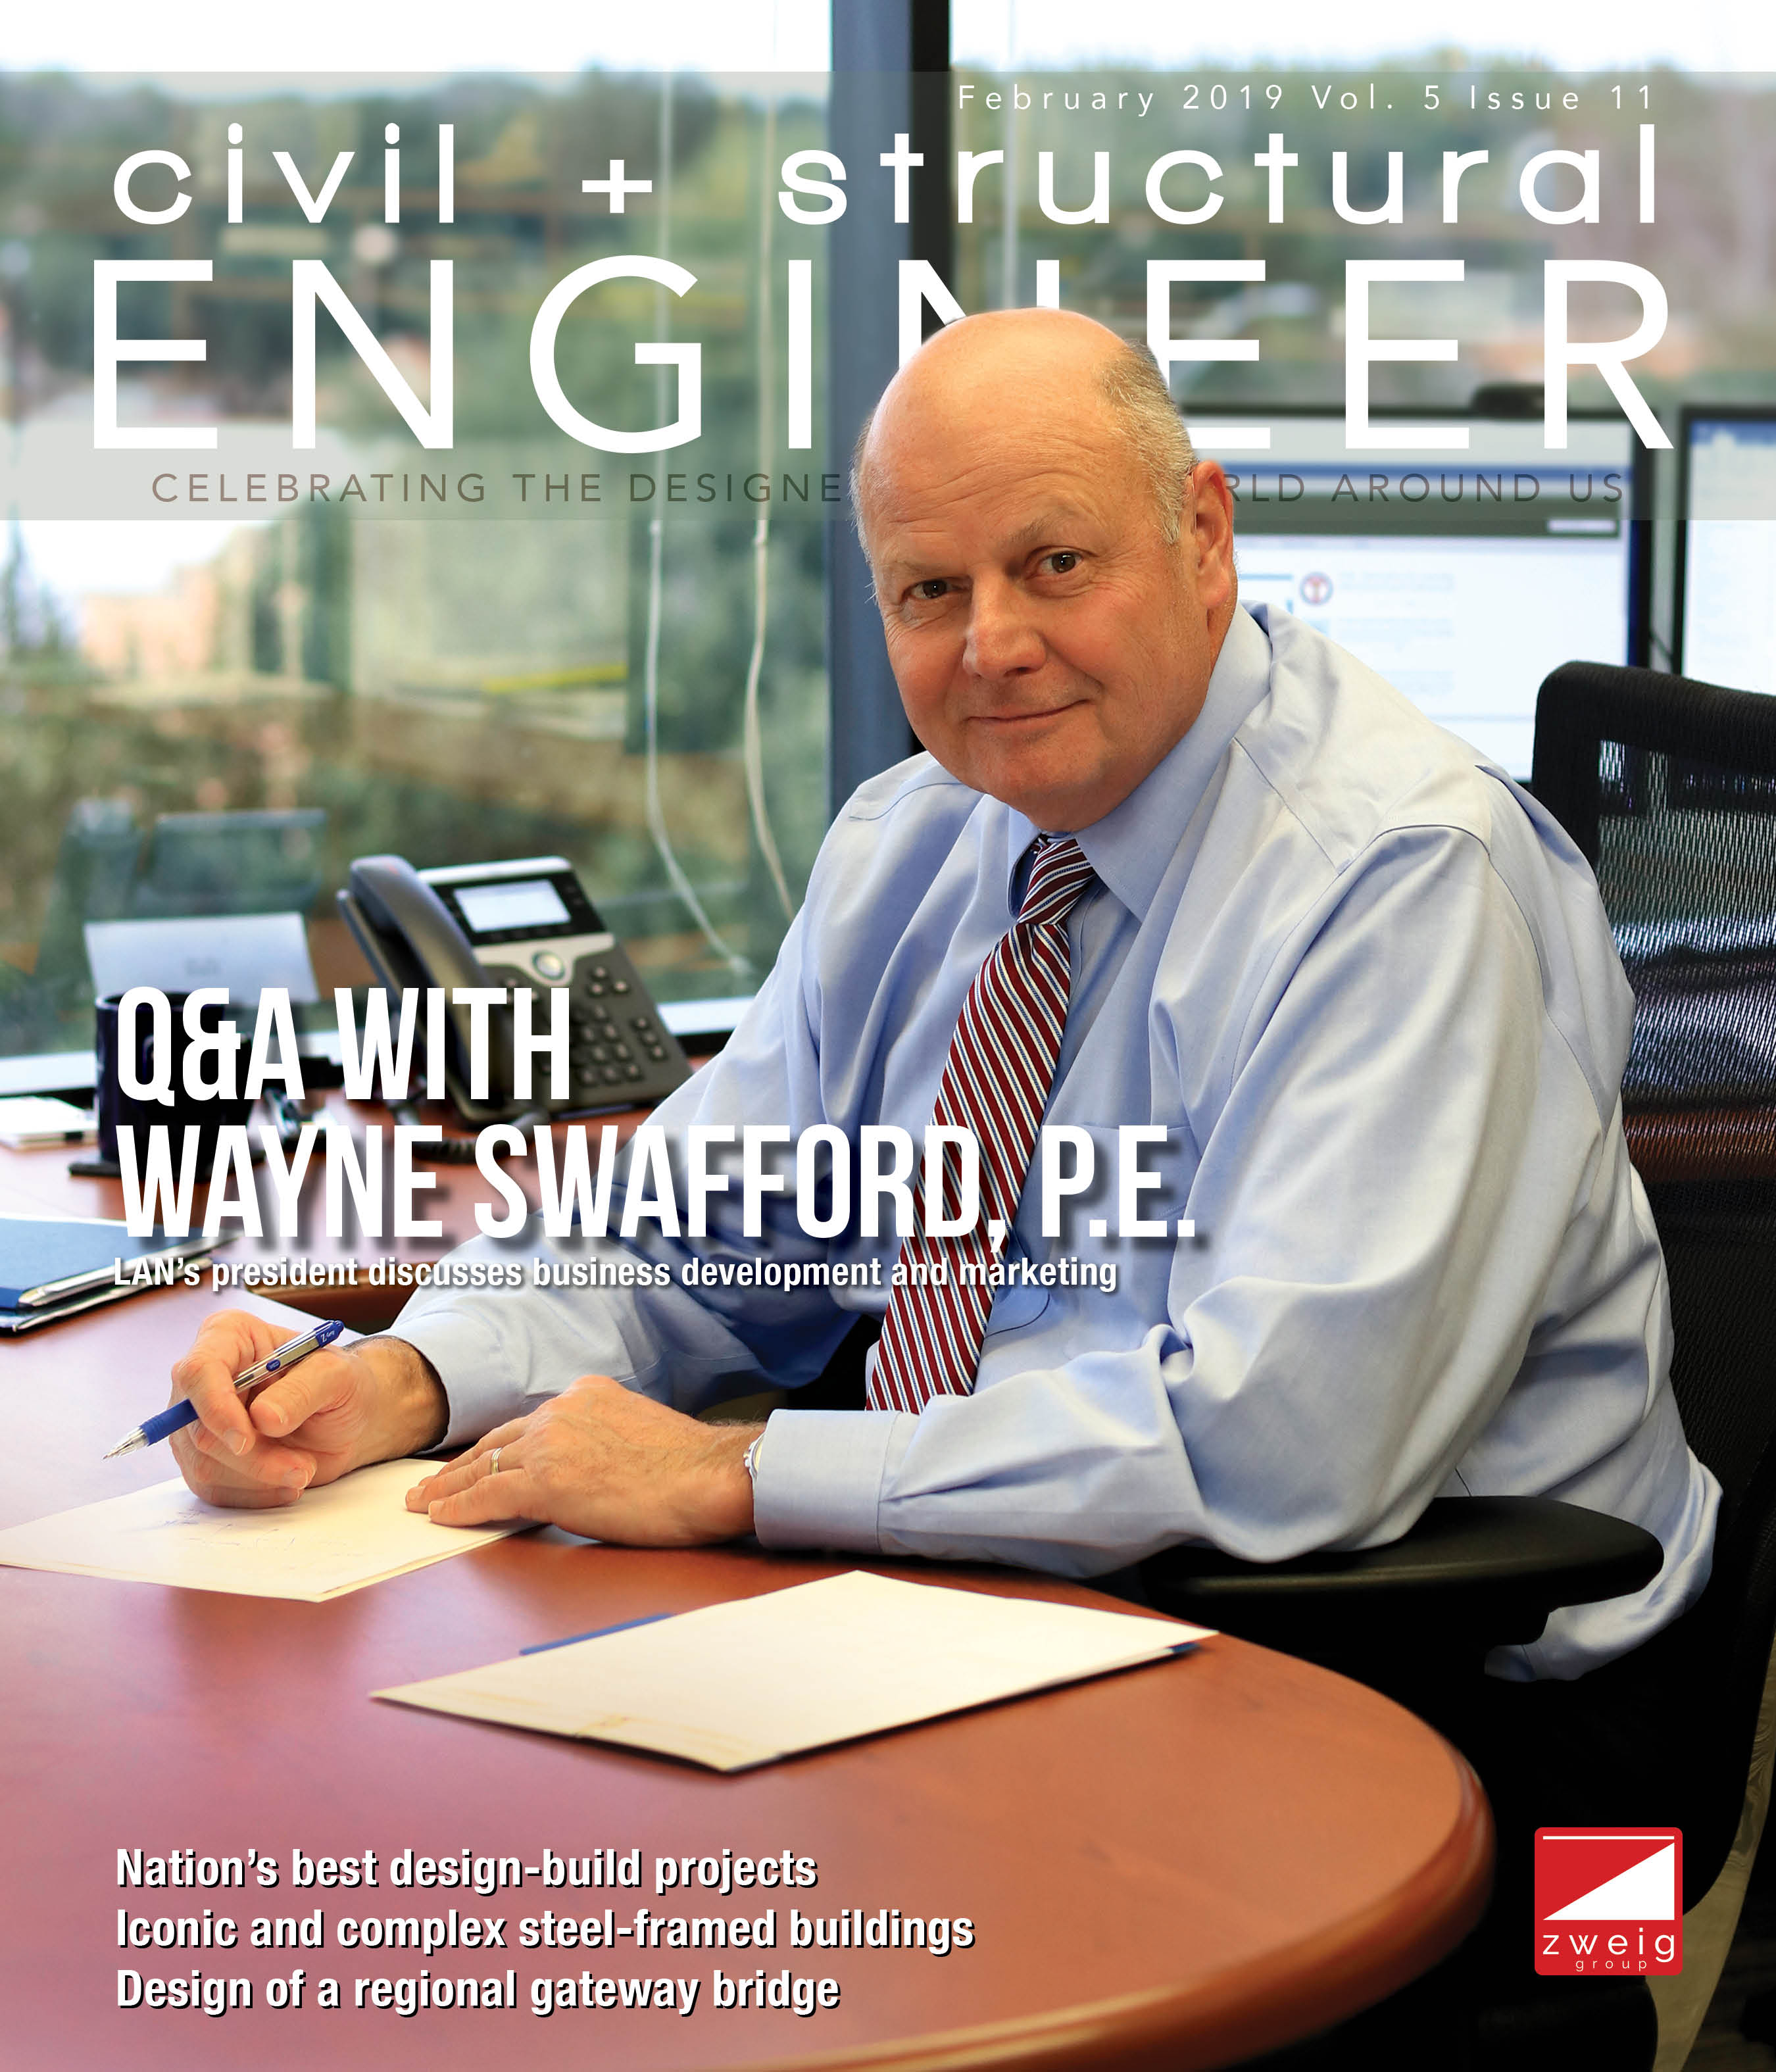 Civil Structural Engineer Magazine: Wood-frame Construction Advantageous In Areas Prone To Seismic Activity